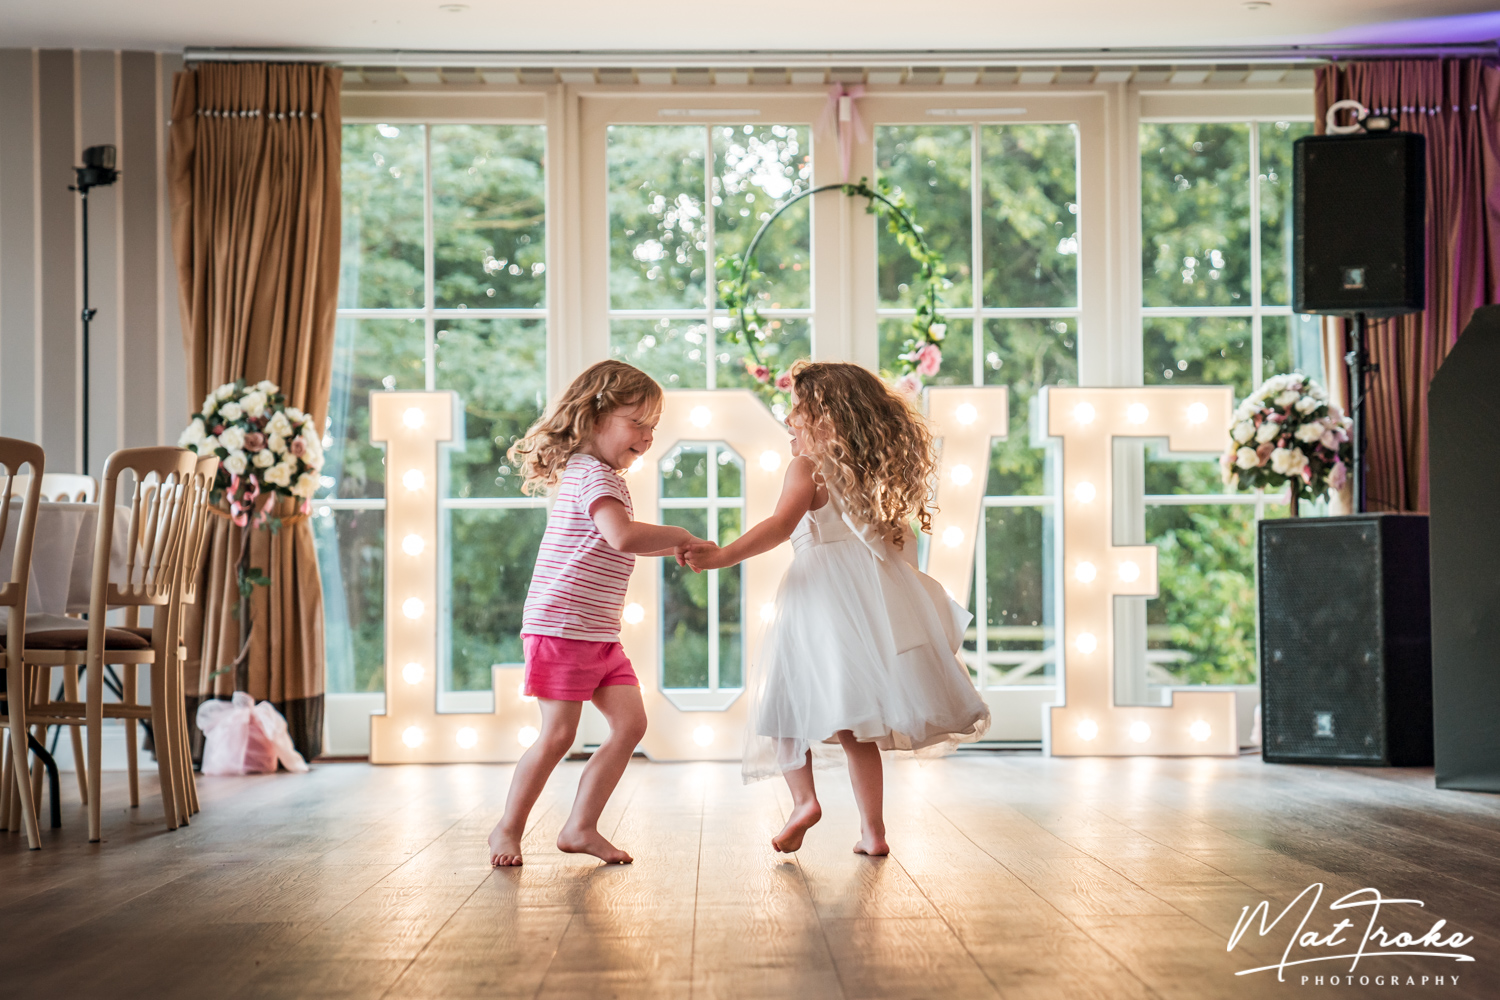 Derbyshire-kelham-manor-country-wedding-photography-nottinghamshire-first-dance-photographer-derby-notts